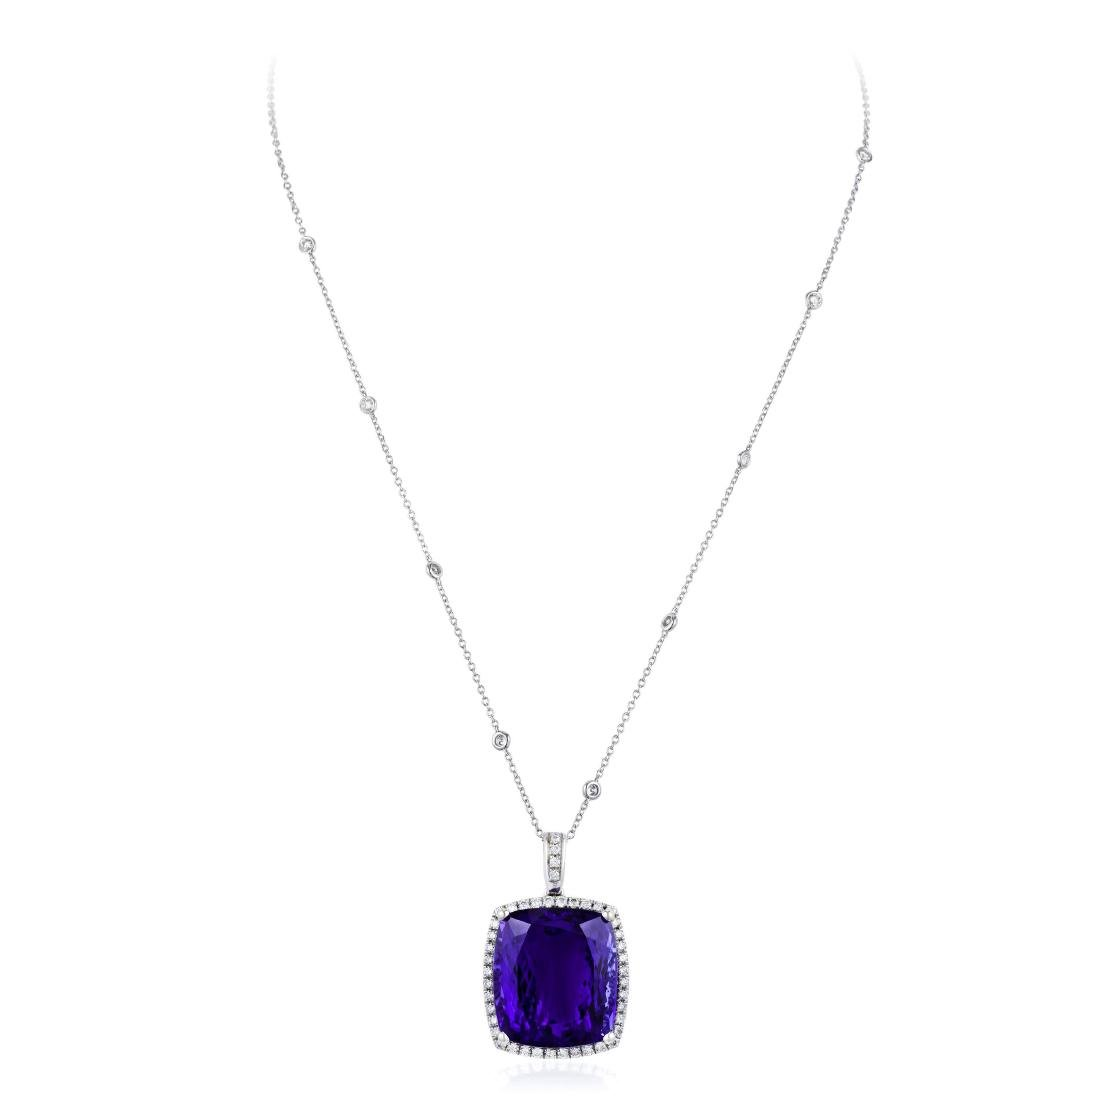 A Tanzanite and Diamond Pendant Necklace - 2